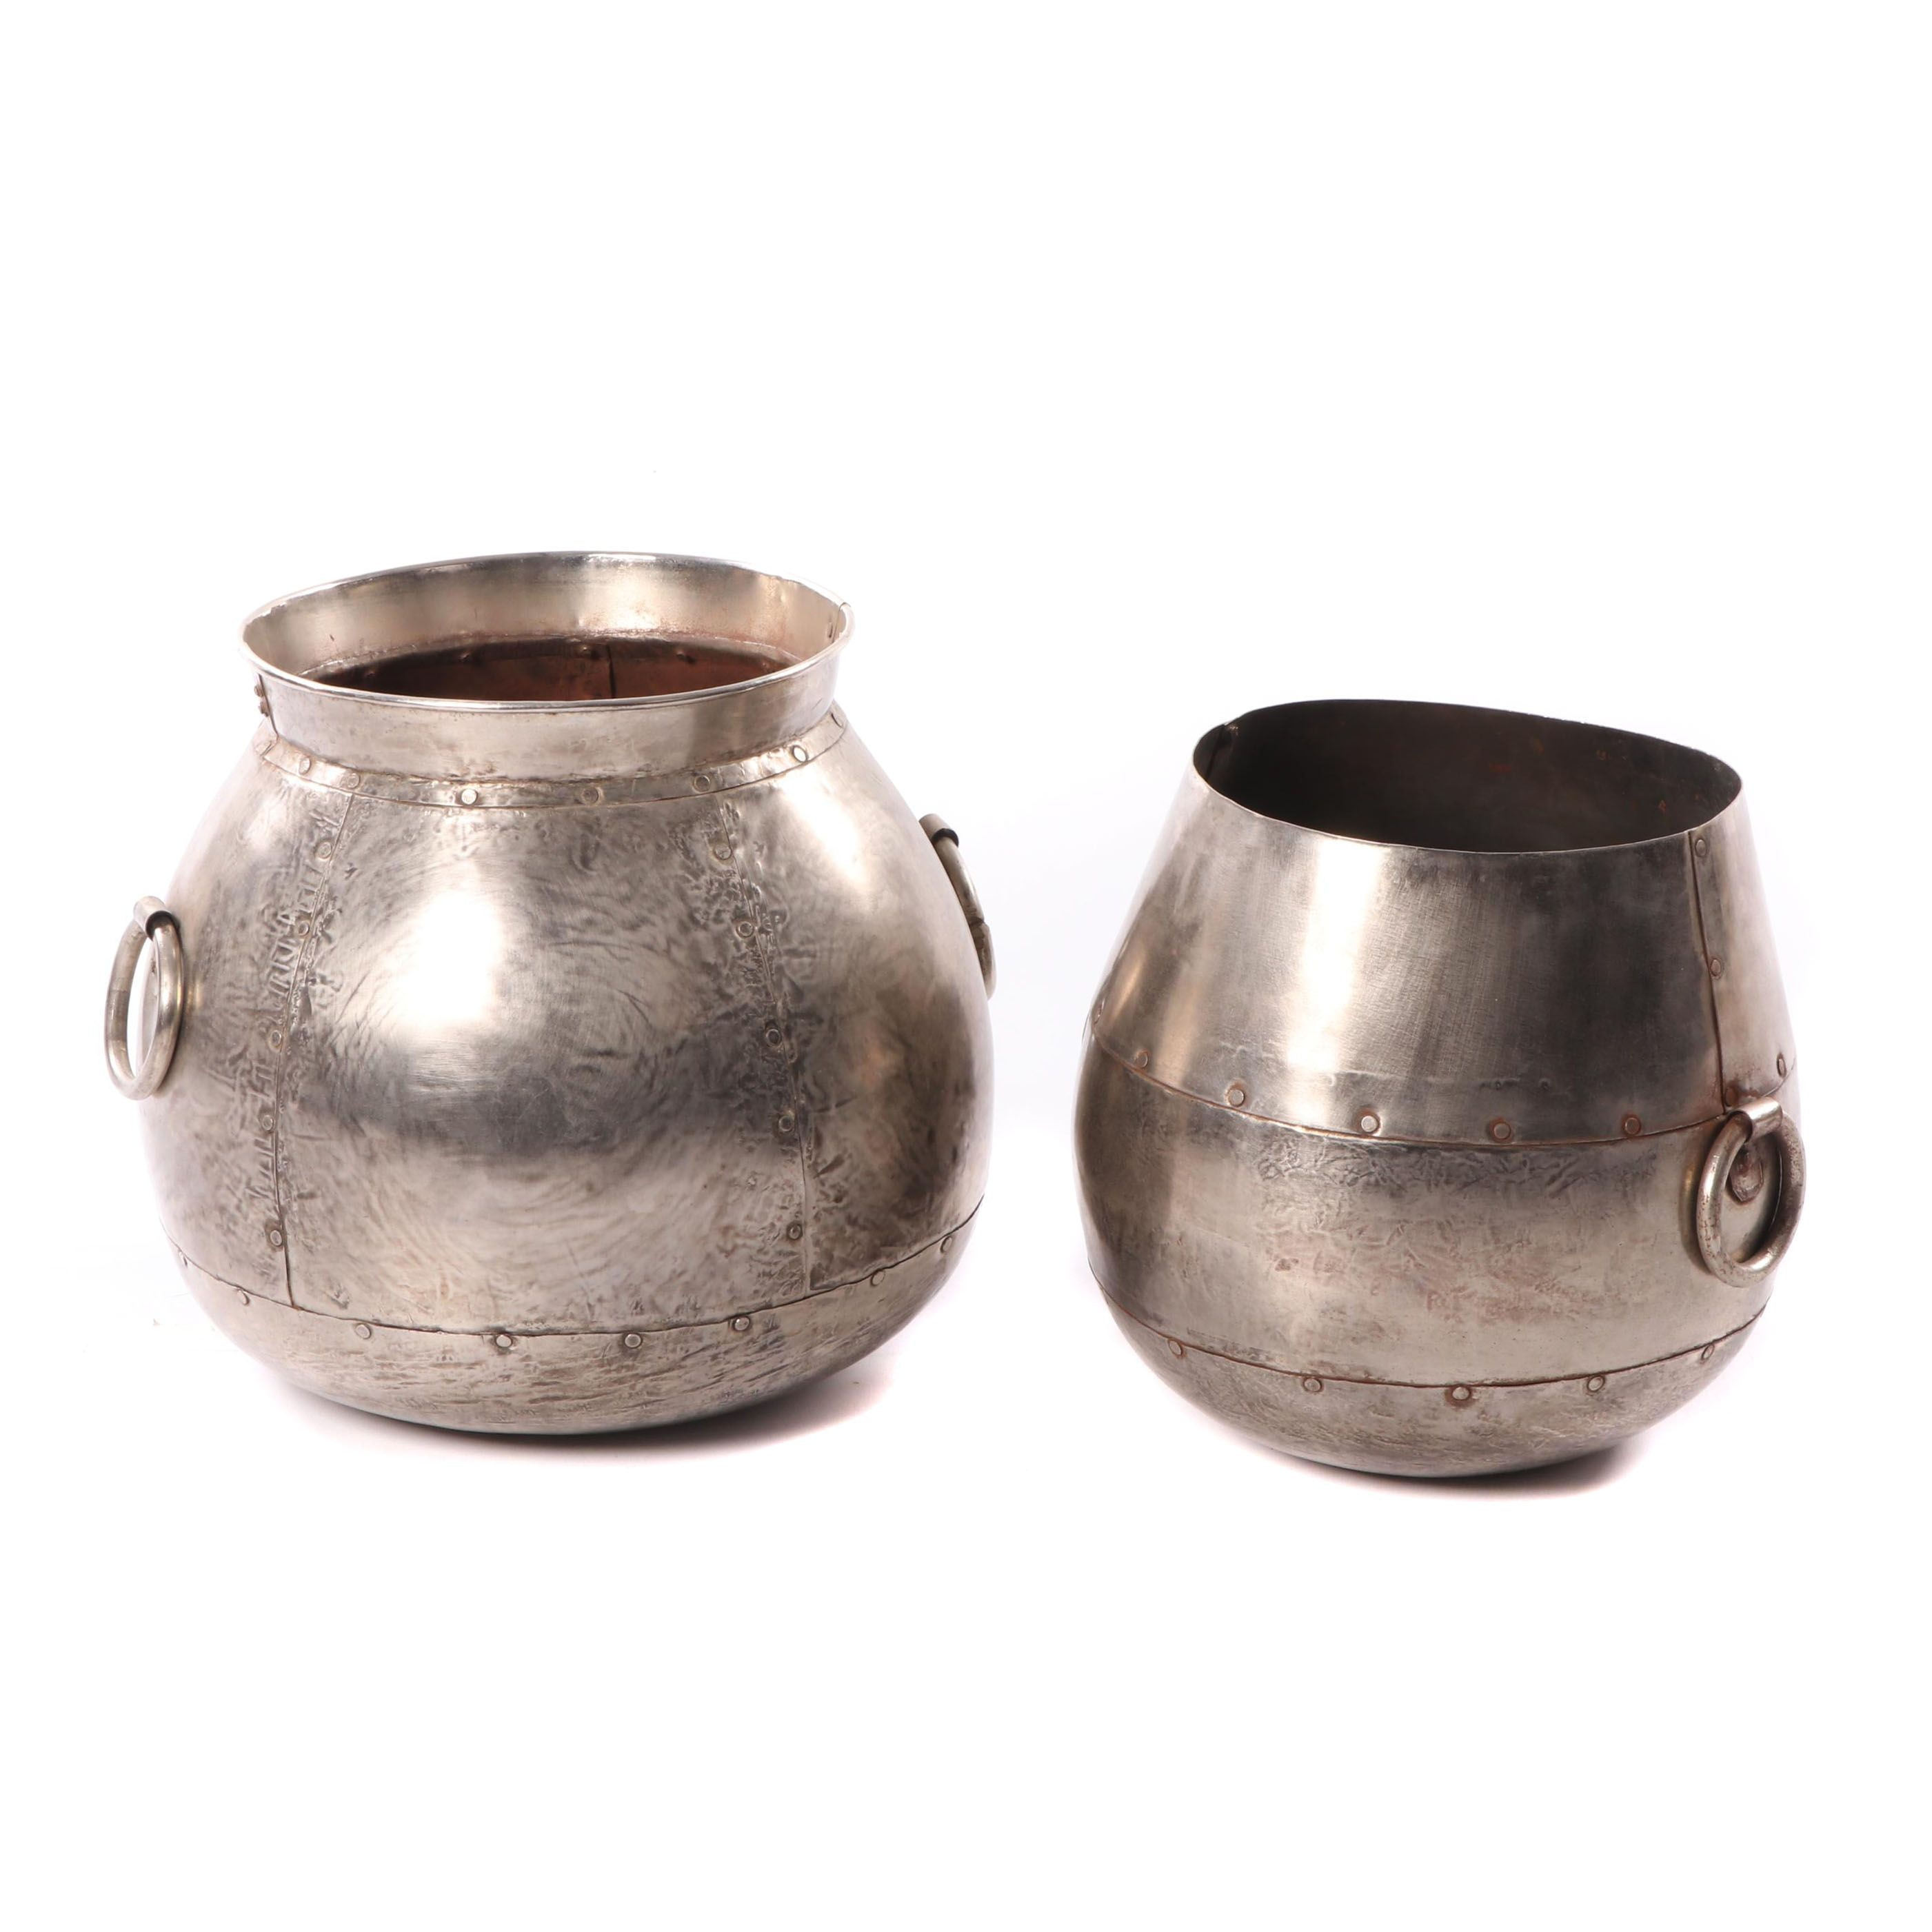 Riveted Metal Cachepots with Handles